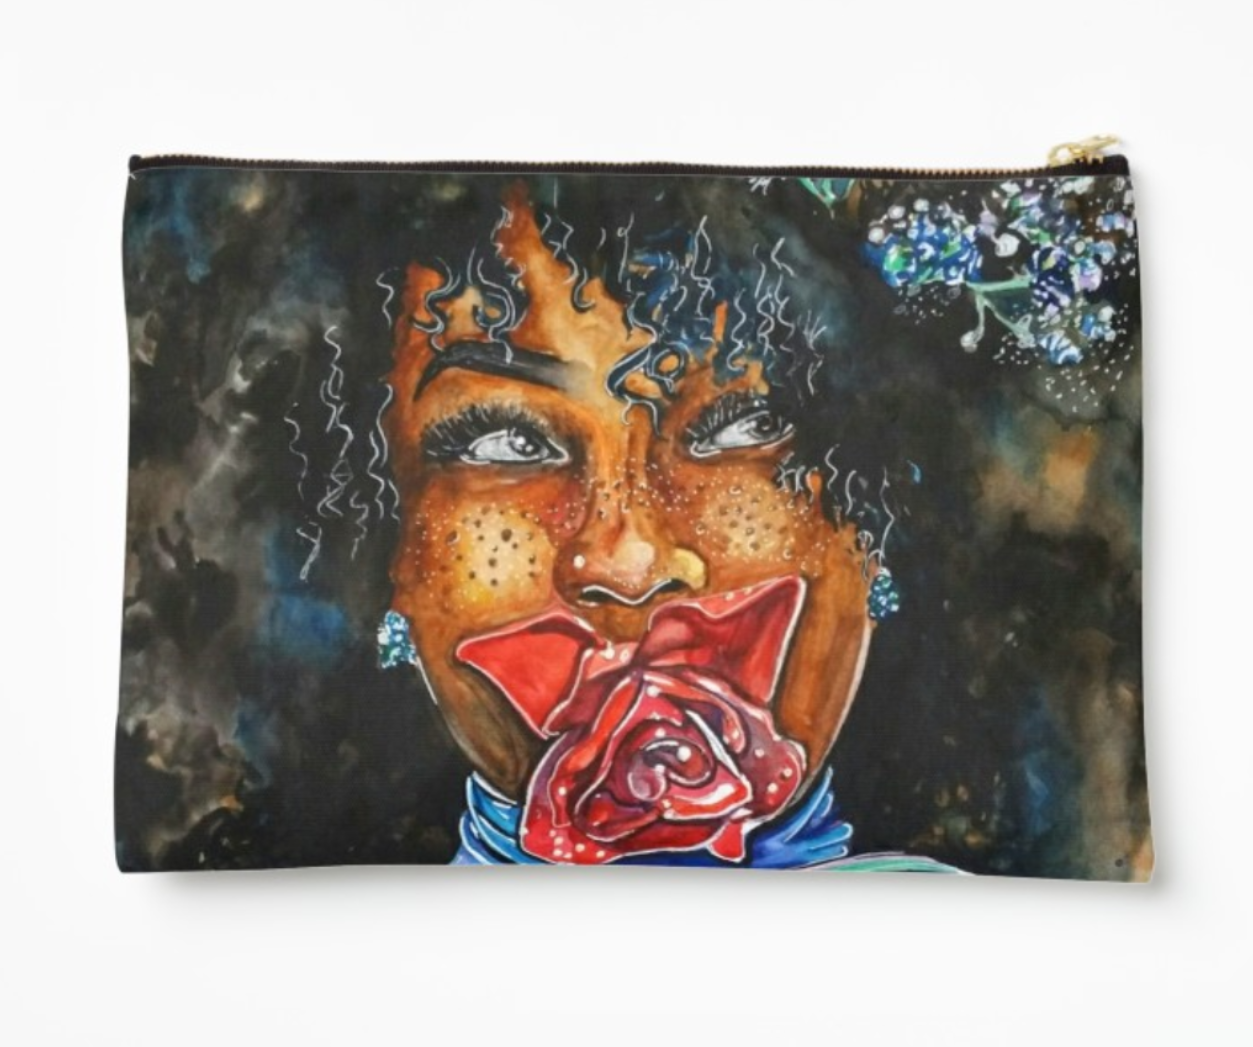 Fine Art Bags - Clutches, Tote Bags, and Backpacks